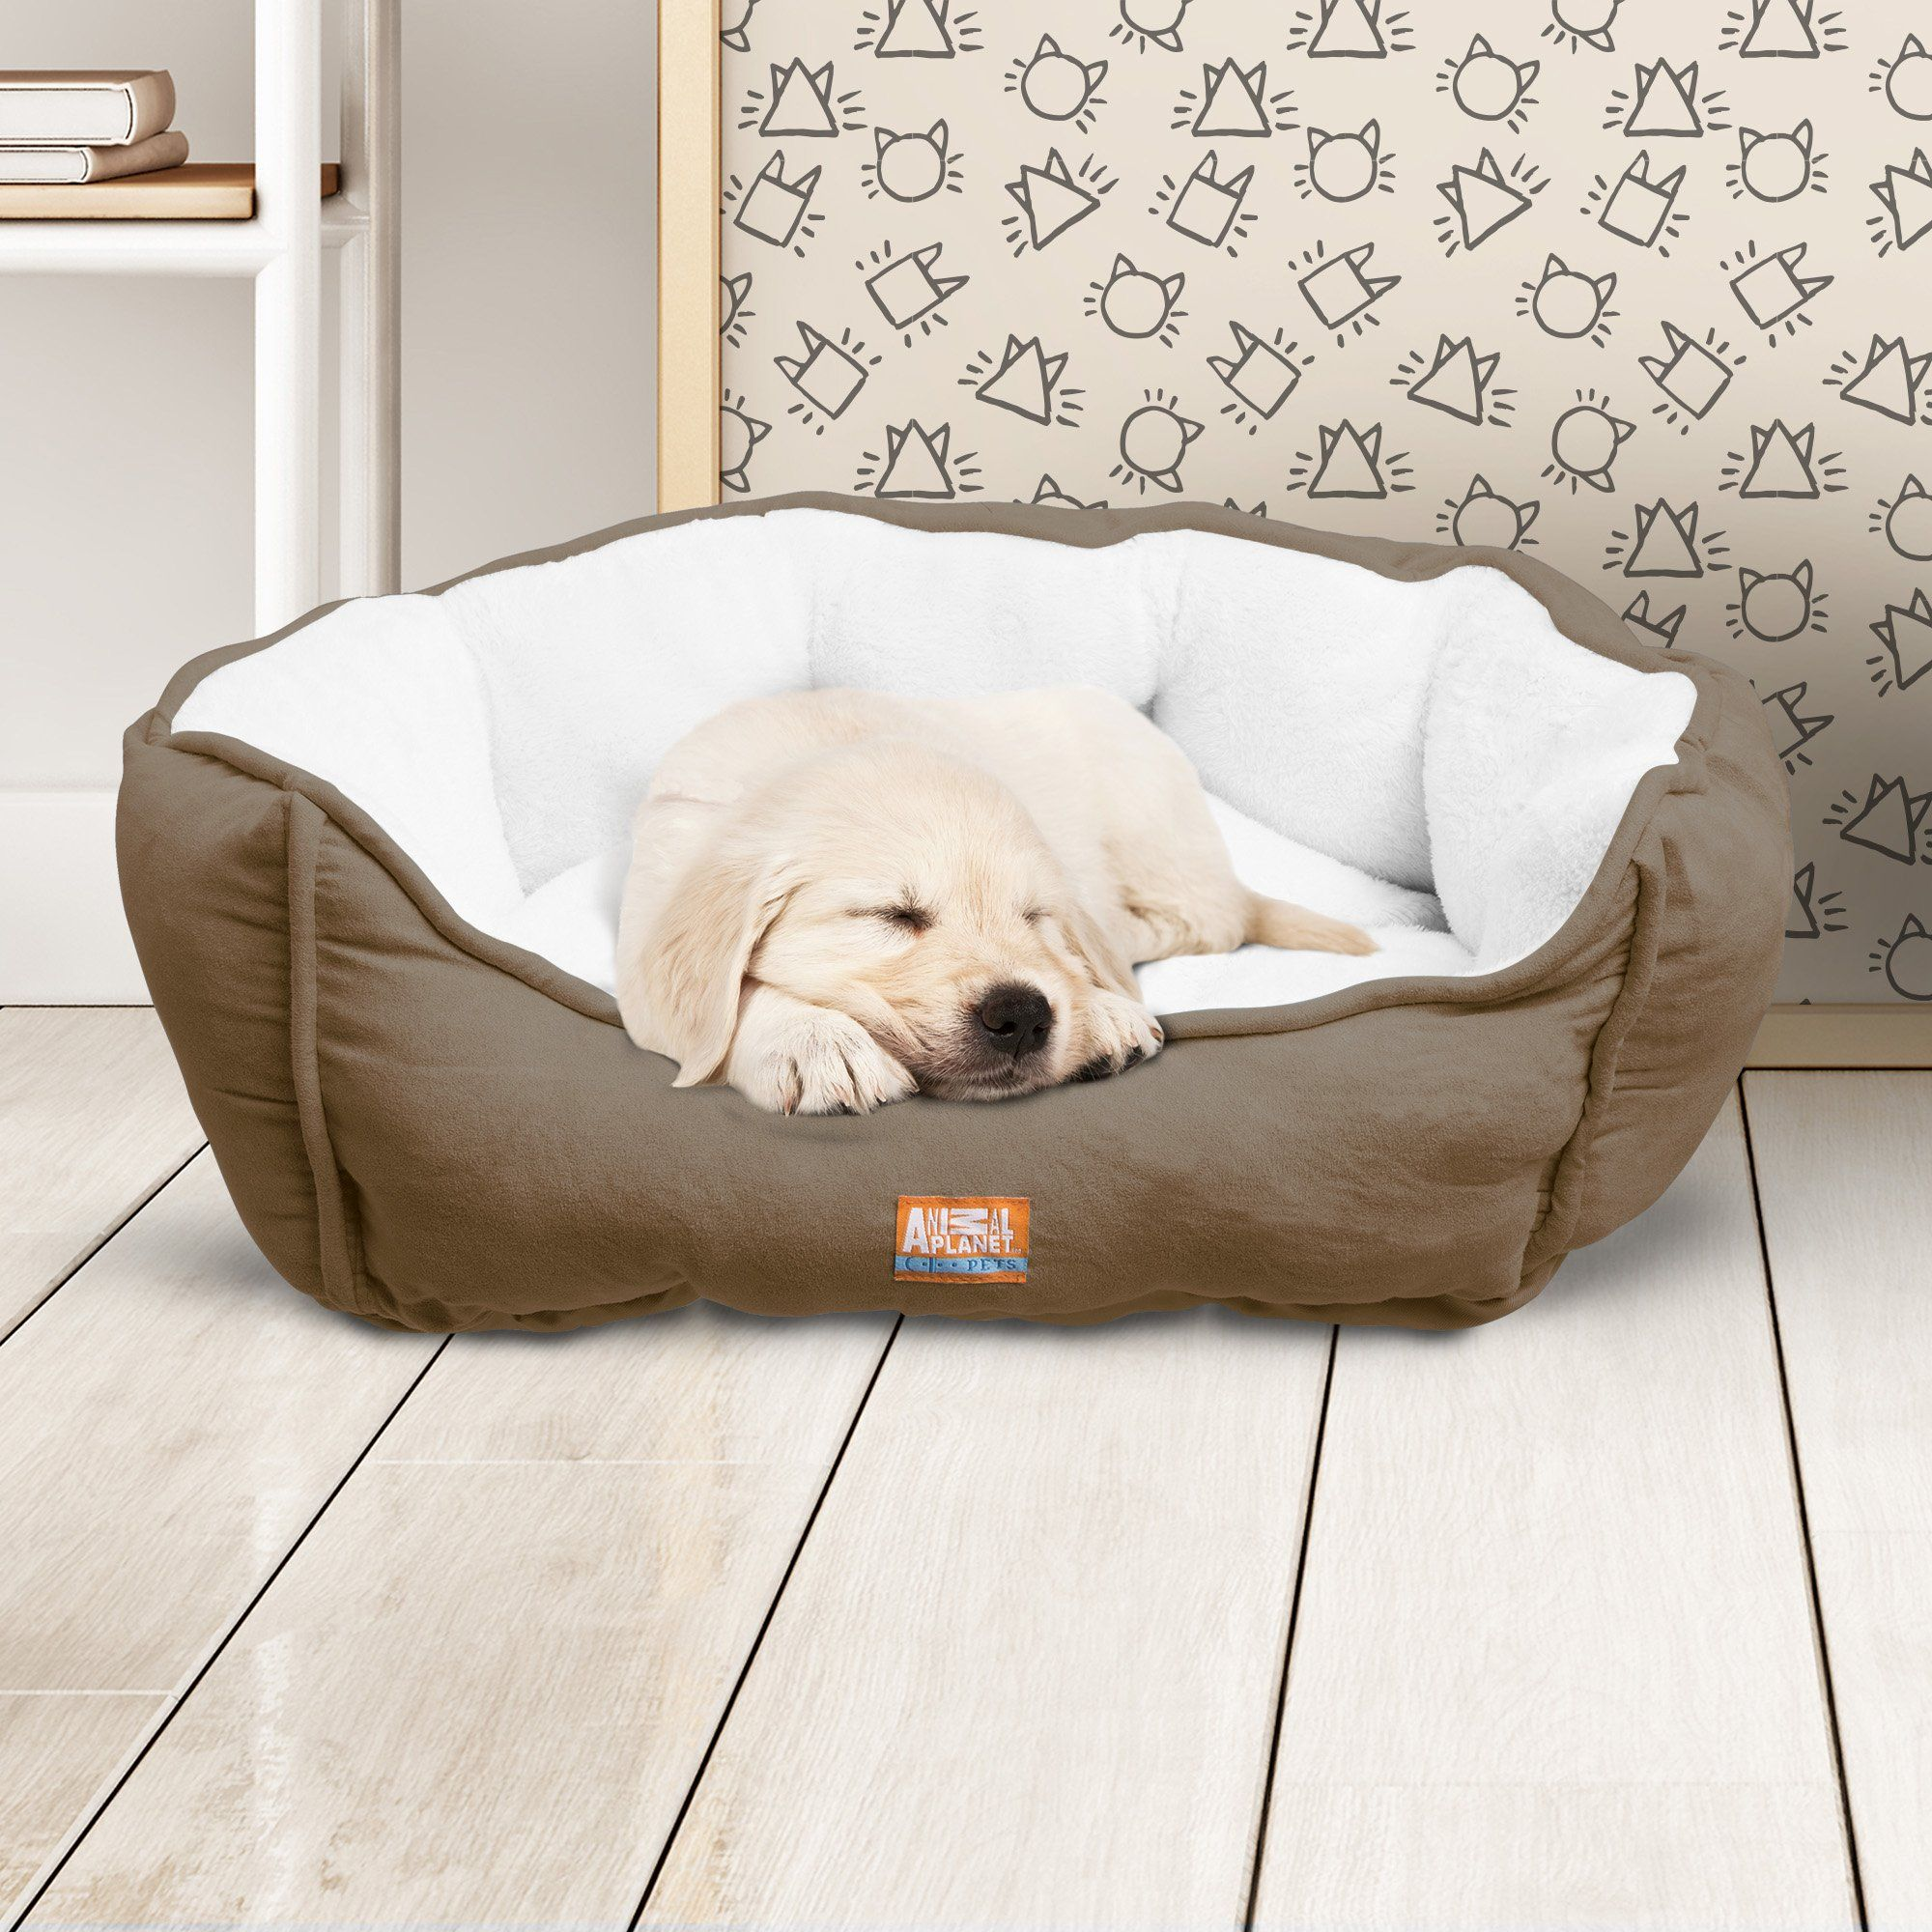 Animal Planet Round Plush Micro Suede And Sherpa Bolster Pet Bed Dogs And Cats Puppies Small And Toy Breeds Cuddly Warm Burrow Dog Pet Beds Dog Crate Dog Sofa